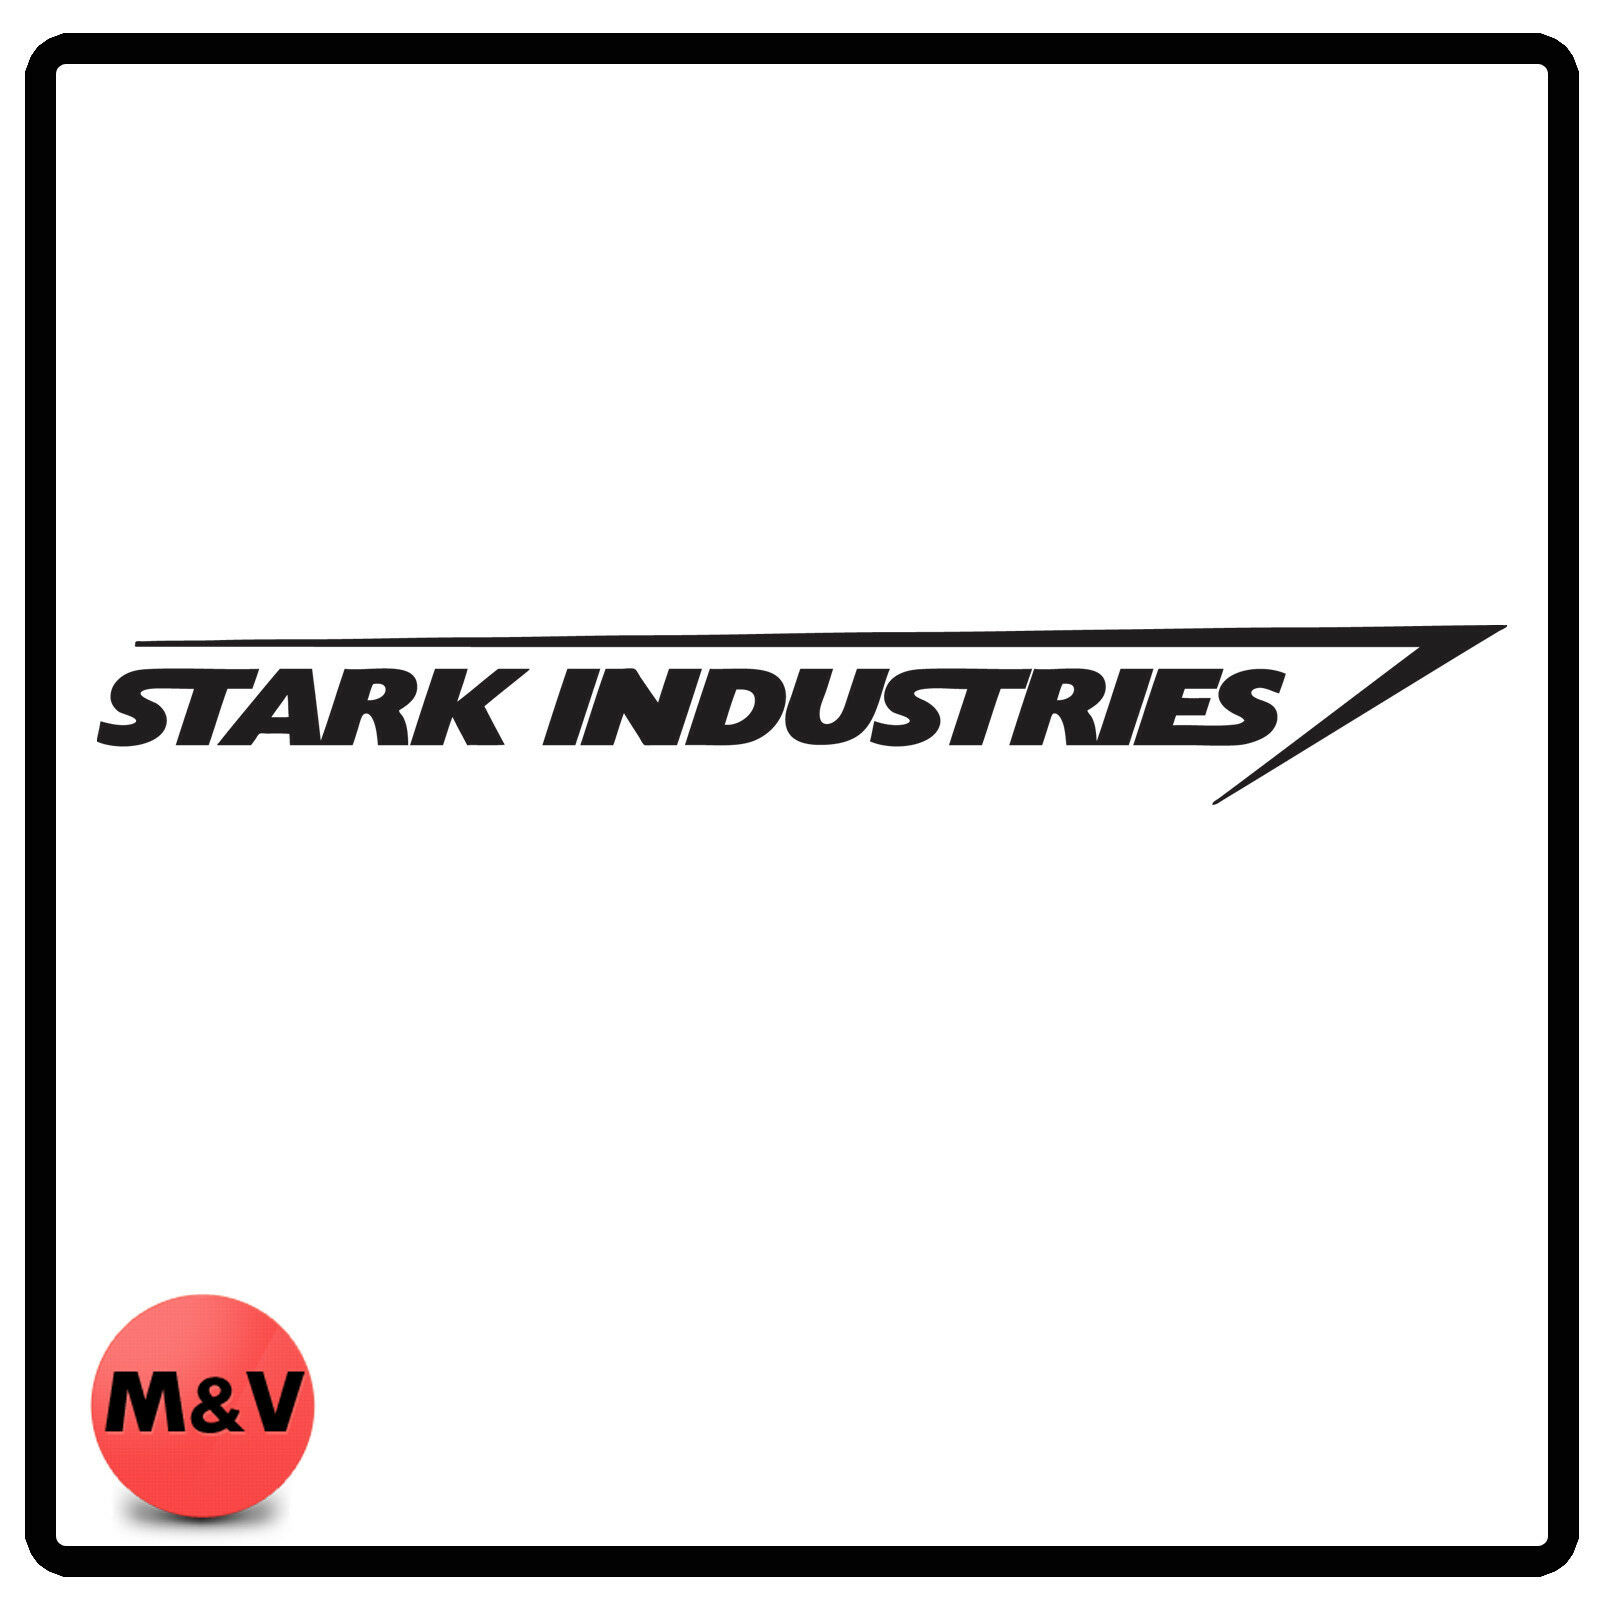 Stark Industries sticker for laptop, xbox, playstation